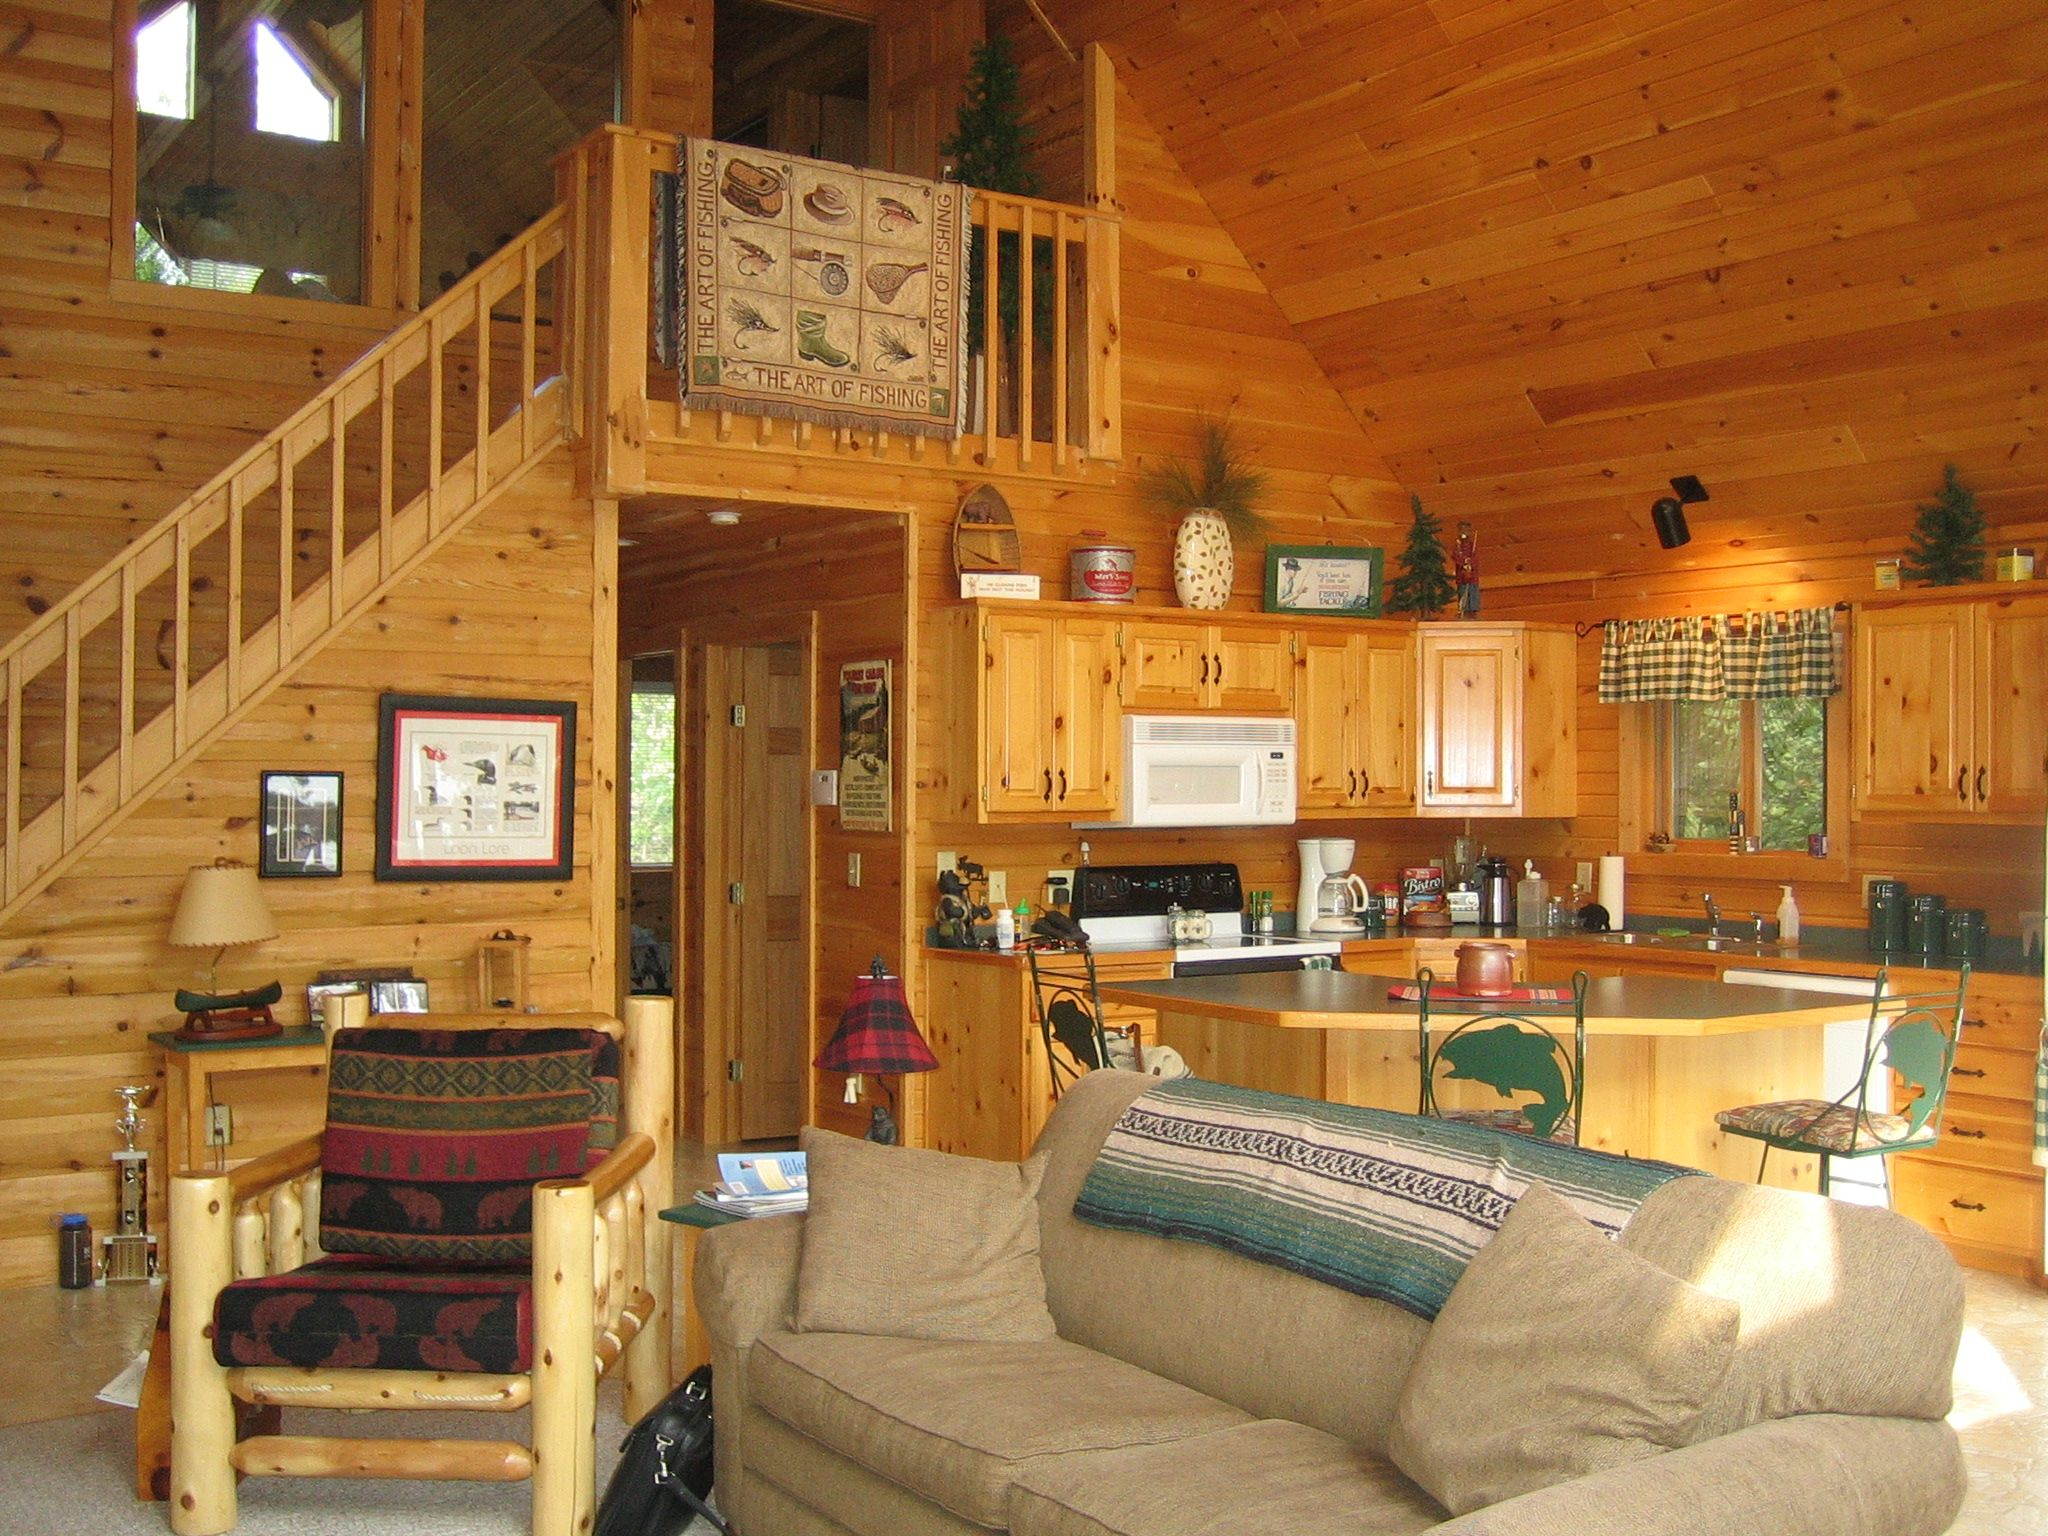 Log Cabin Kitchen Decor Interior Cabins Home Decor Cabin Loft Loft Interior Design Ideas